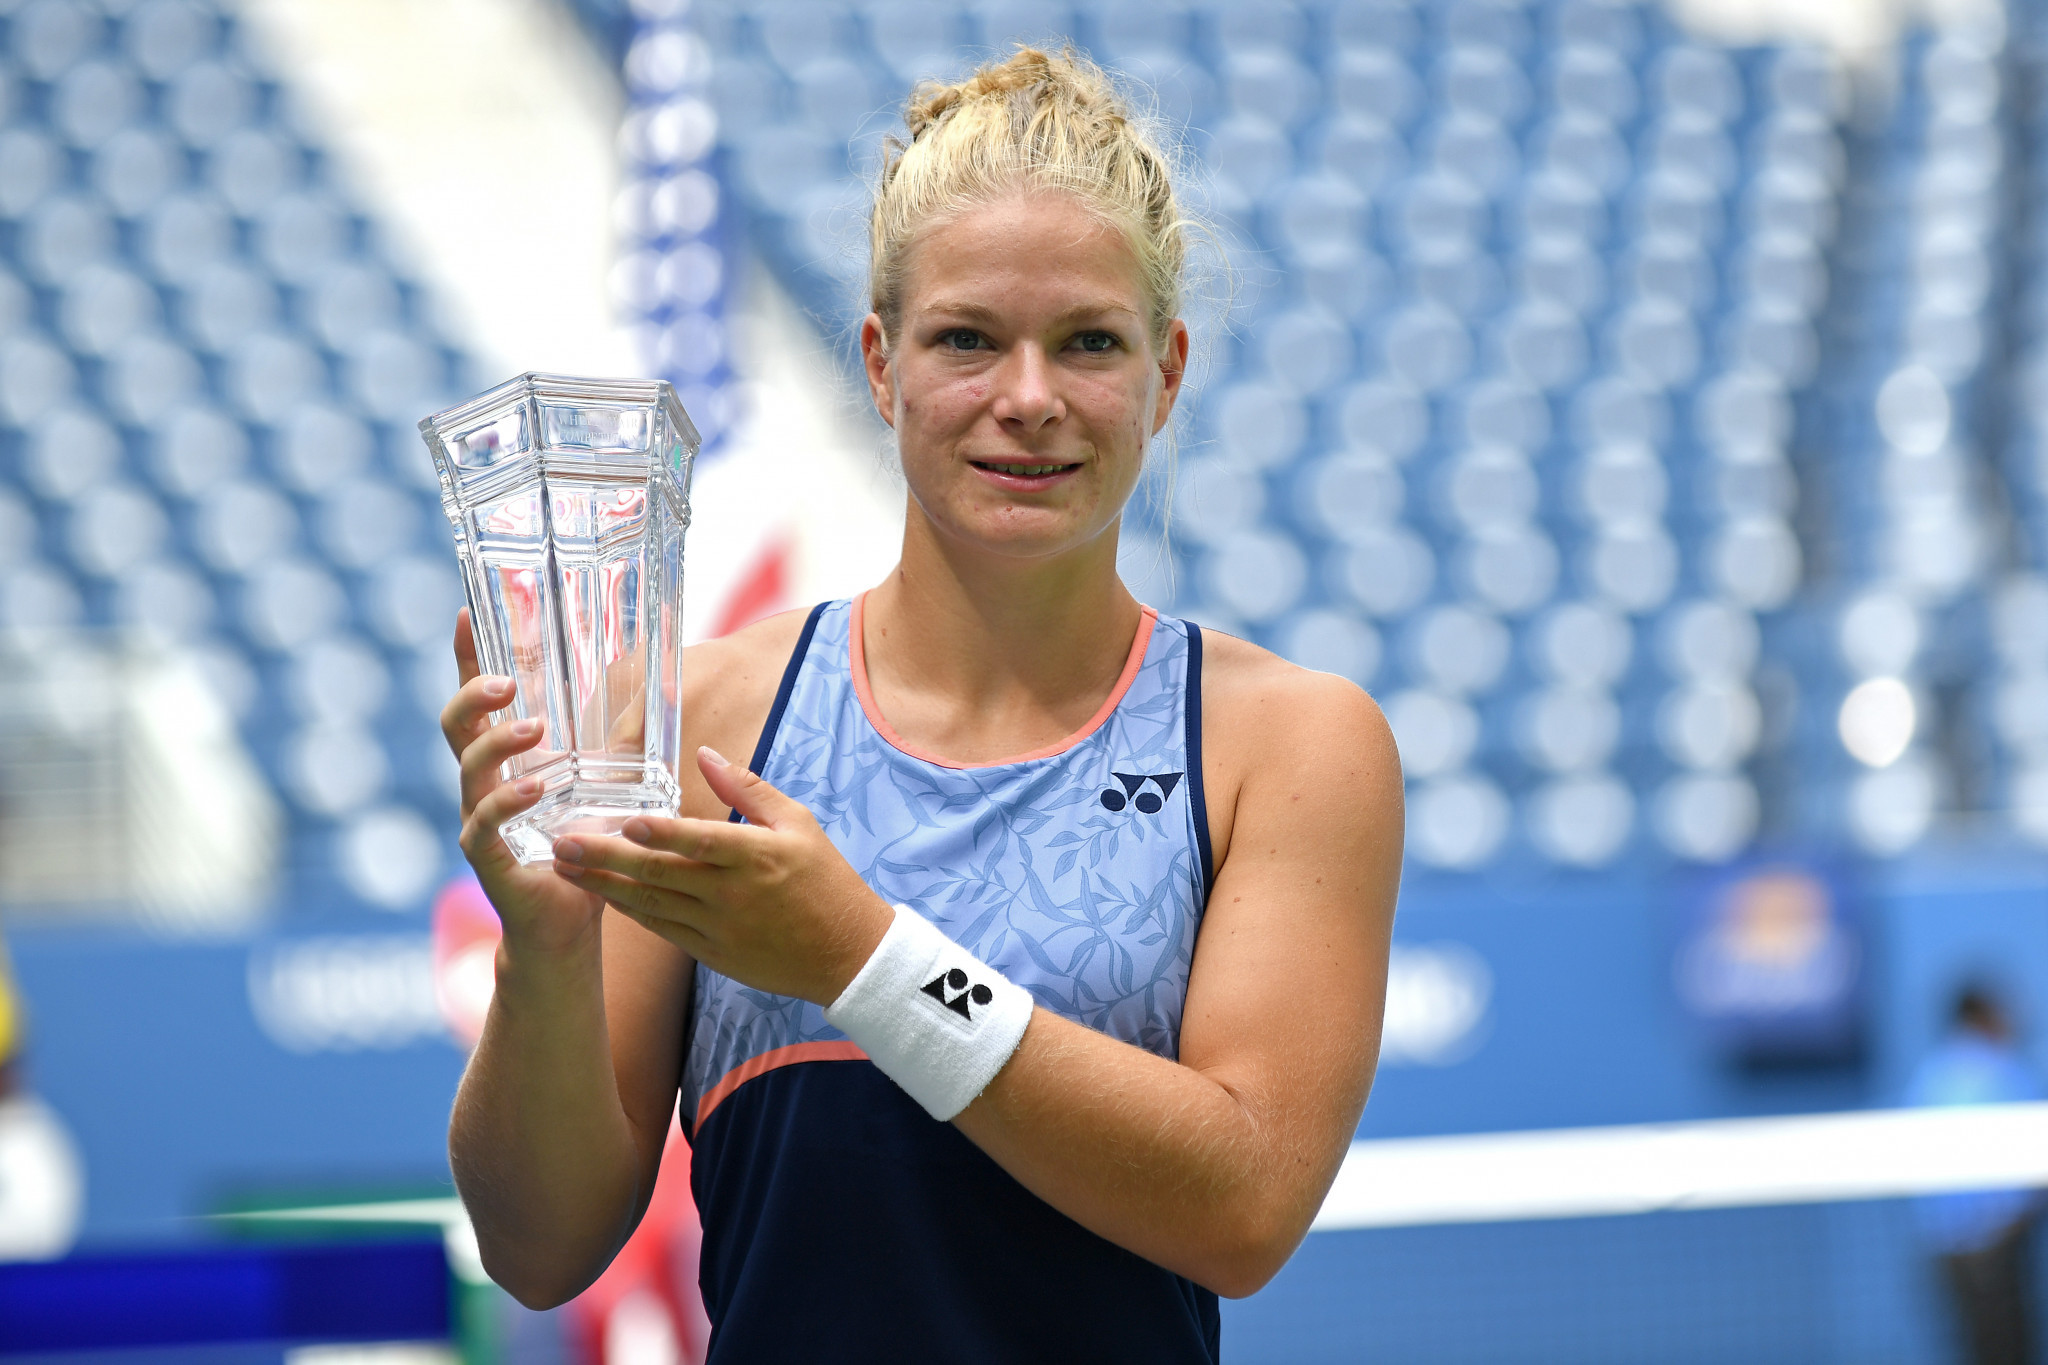 Diede de Groot won the US Open singles title in 2019, taking her singles Grand Slam tally to seven ©Getty Images